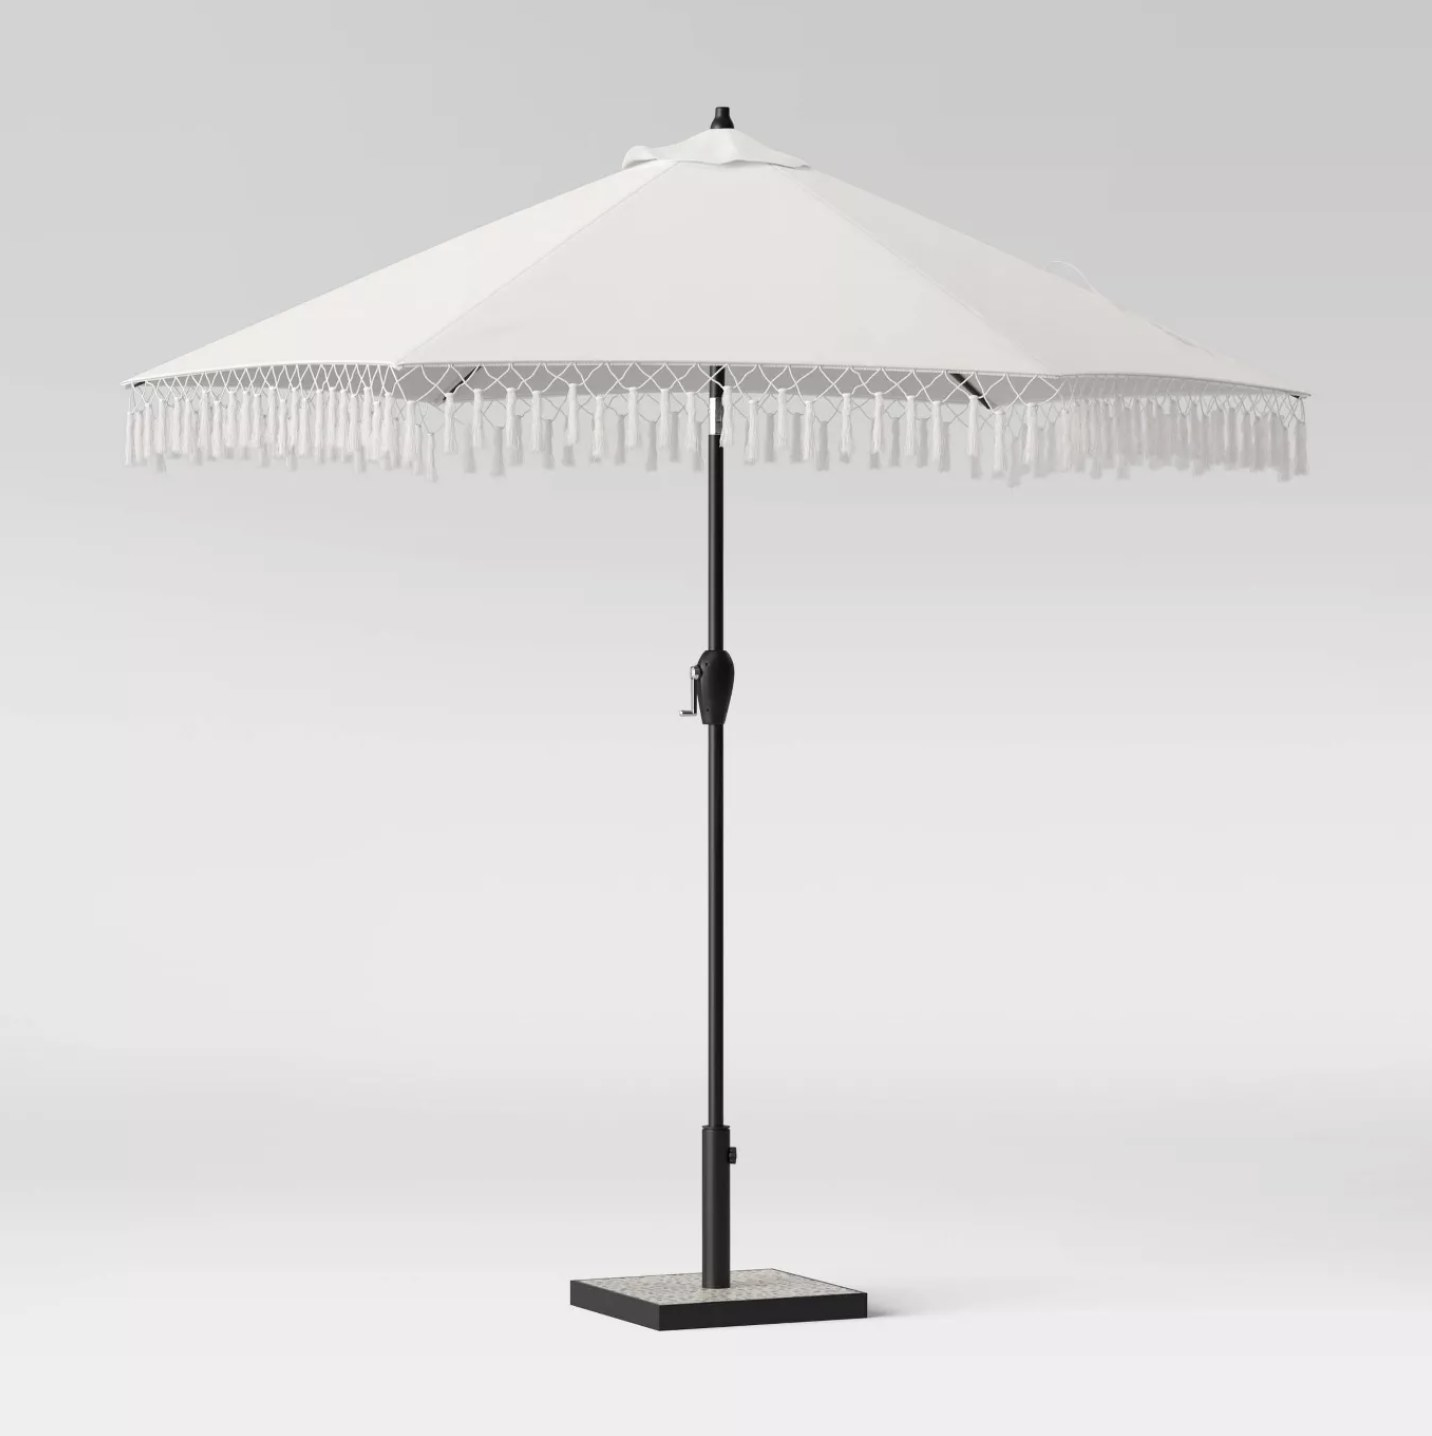 A white patio umbrella with tassels on the edges on a black stand